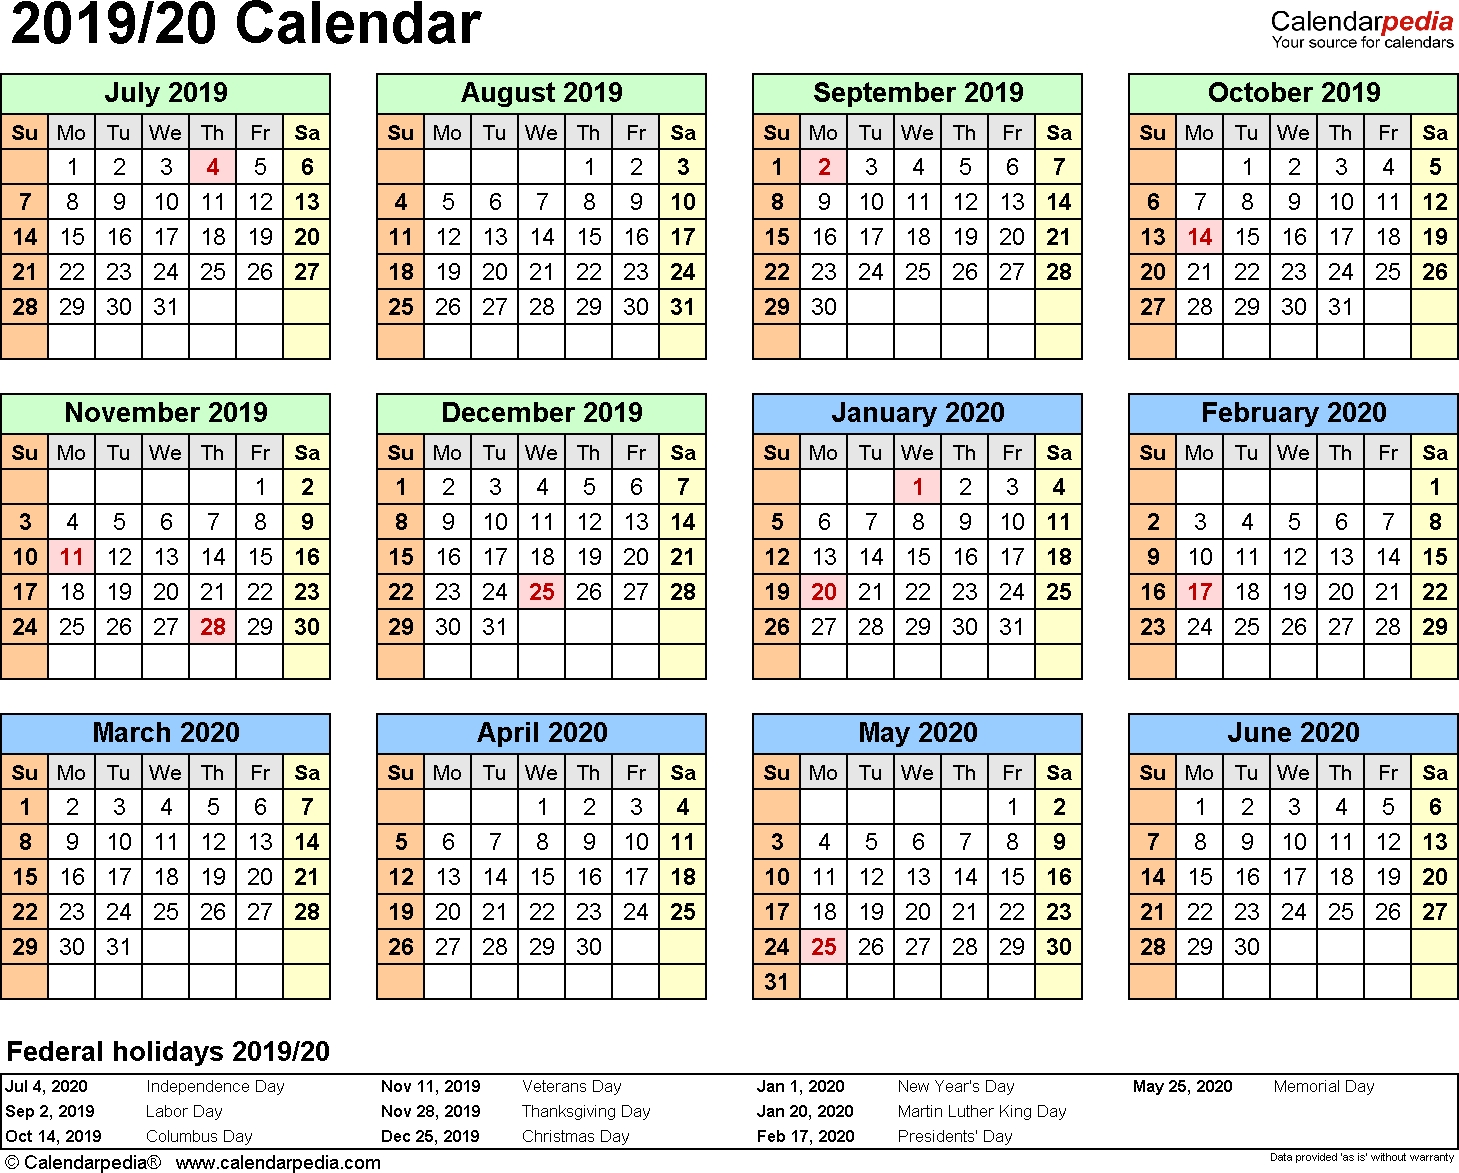 Split Year Calendar 2019/20 (July To June) - Pdf Templates intended for Year To View Calendar 2019/2020